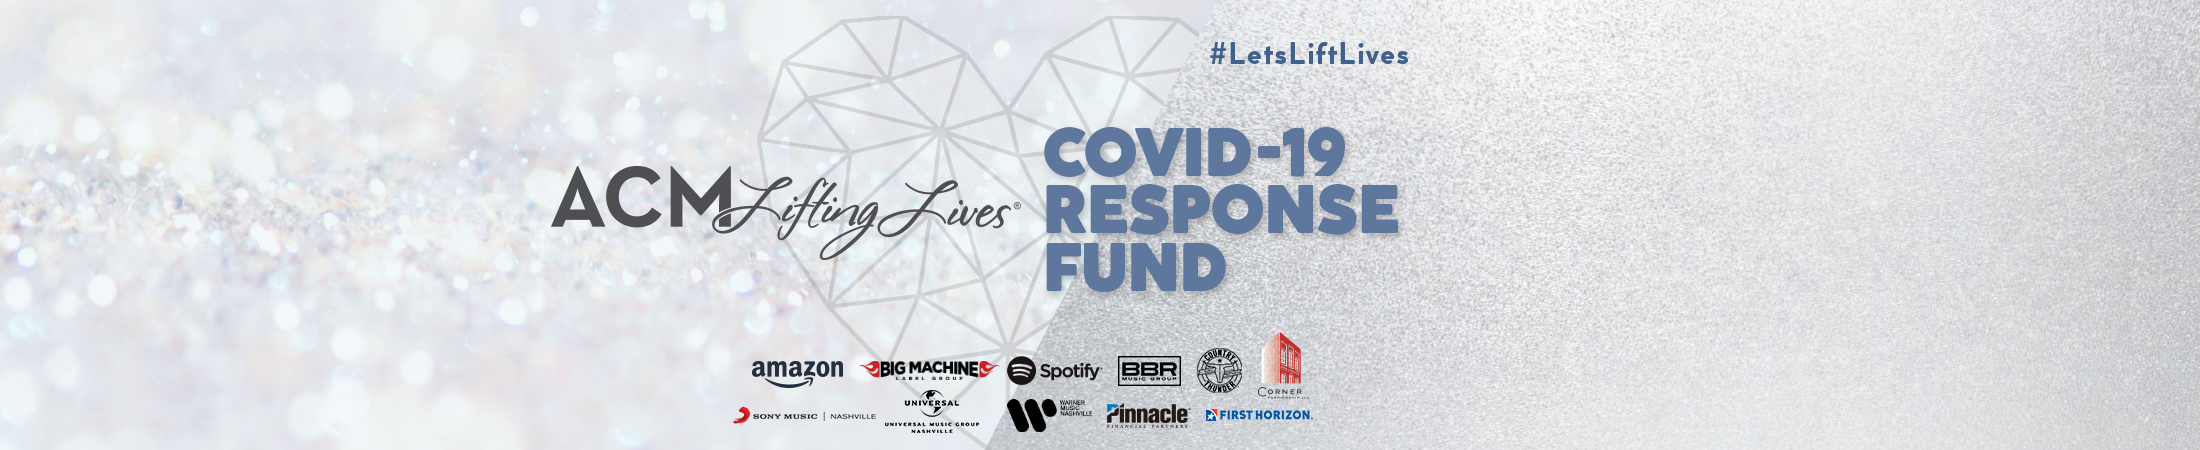 COVID-19 Response Fund | ACM Lifting Lives